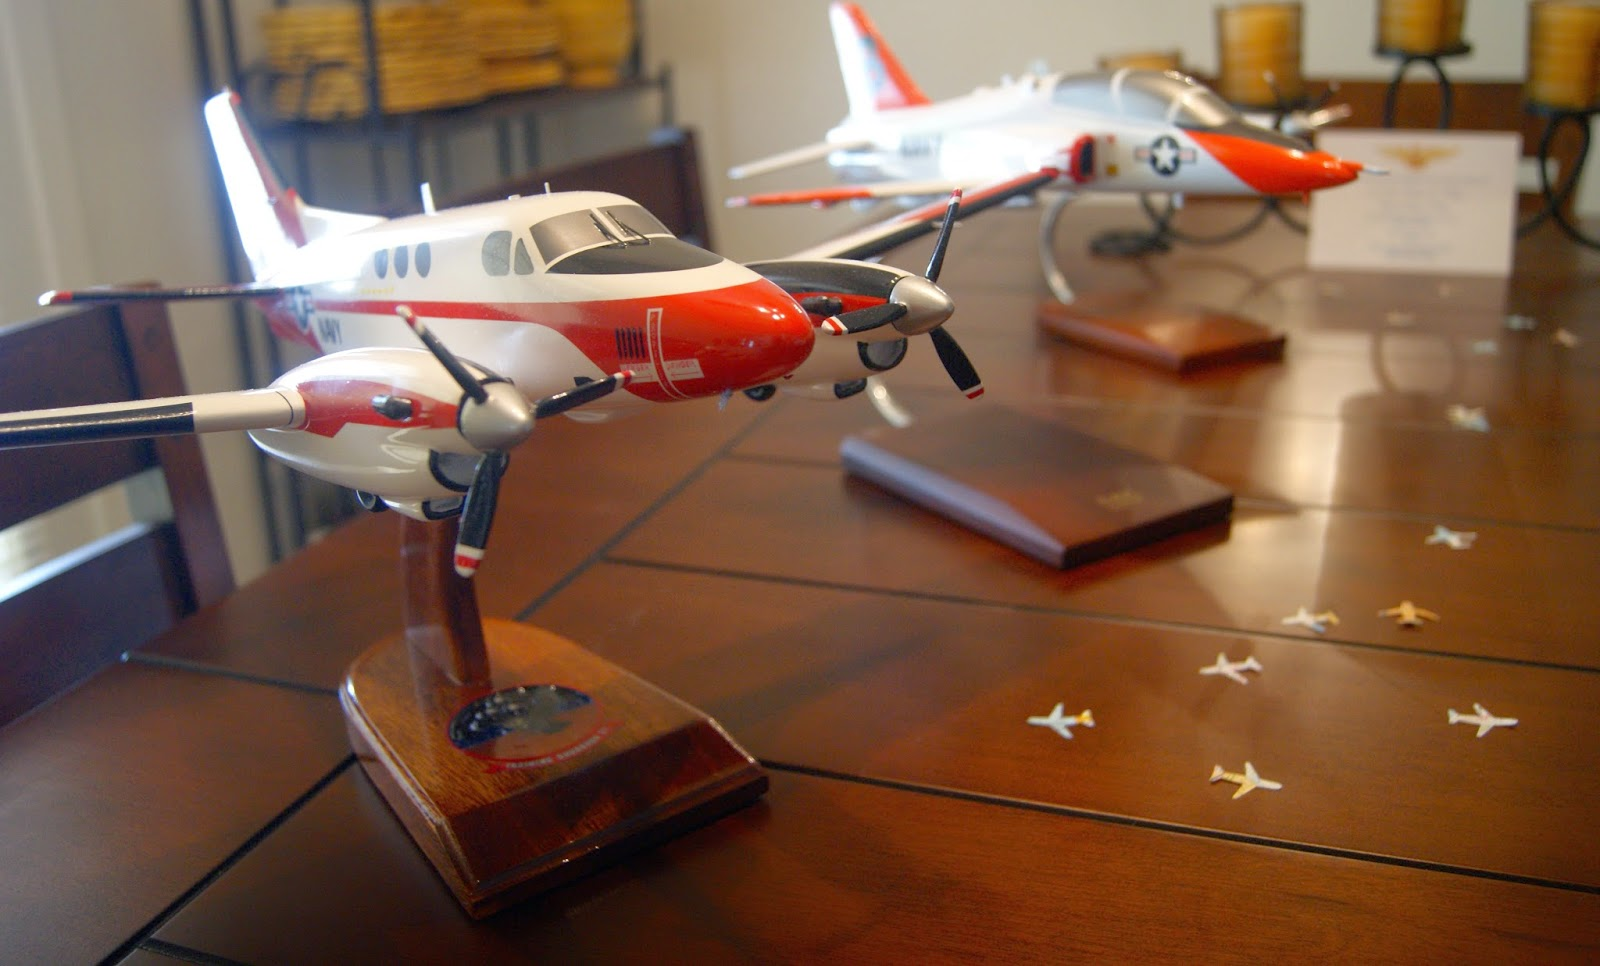 My favorite place to purchase them is Squadron Toys because you can get the squadron logo on the base. This makes it all the more special for the aviator!